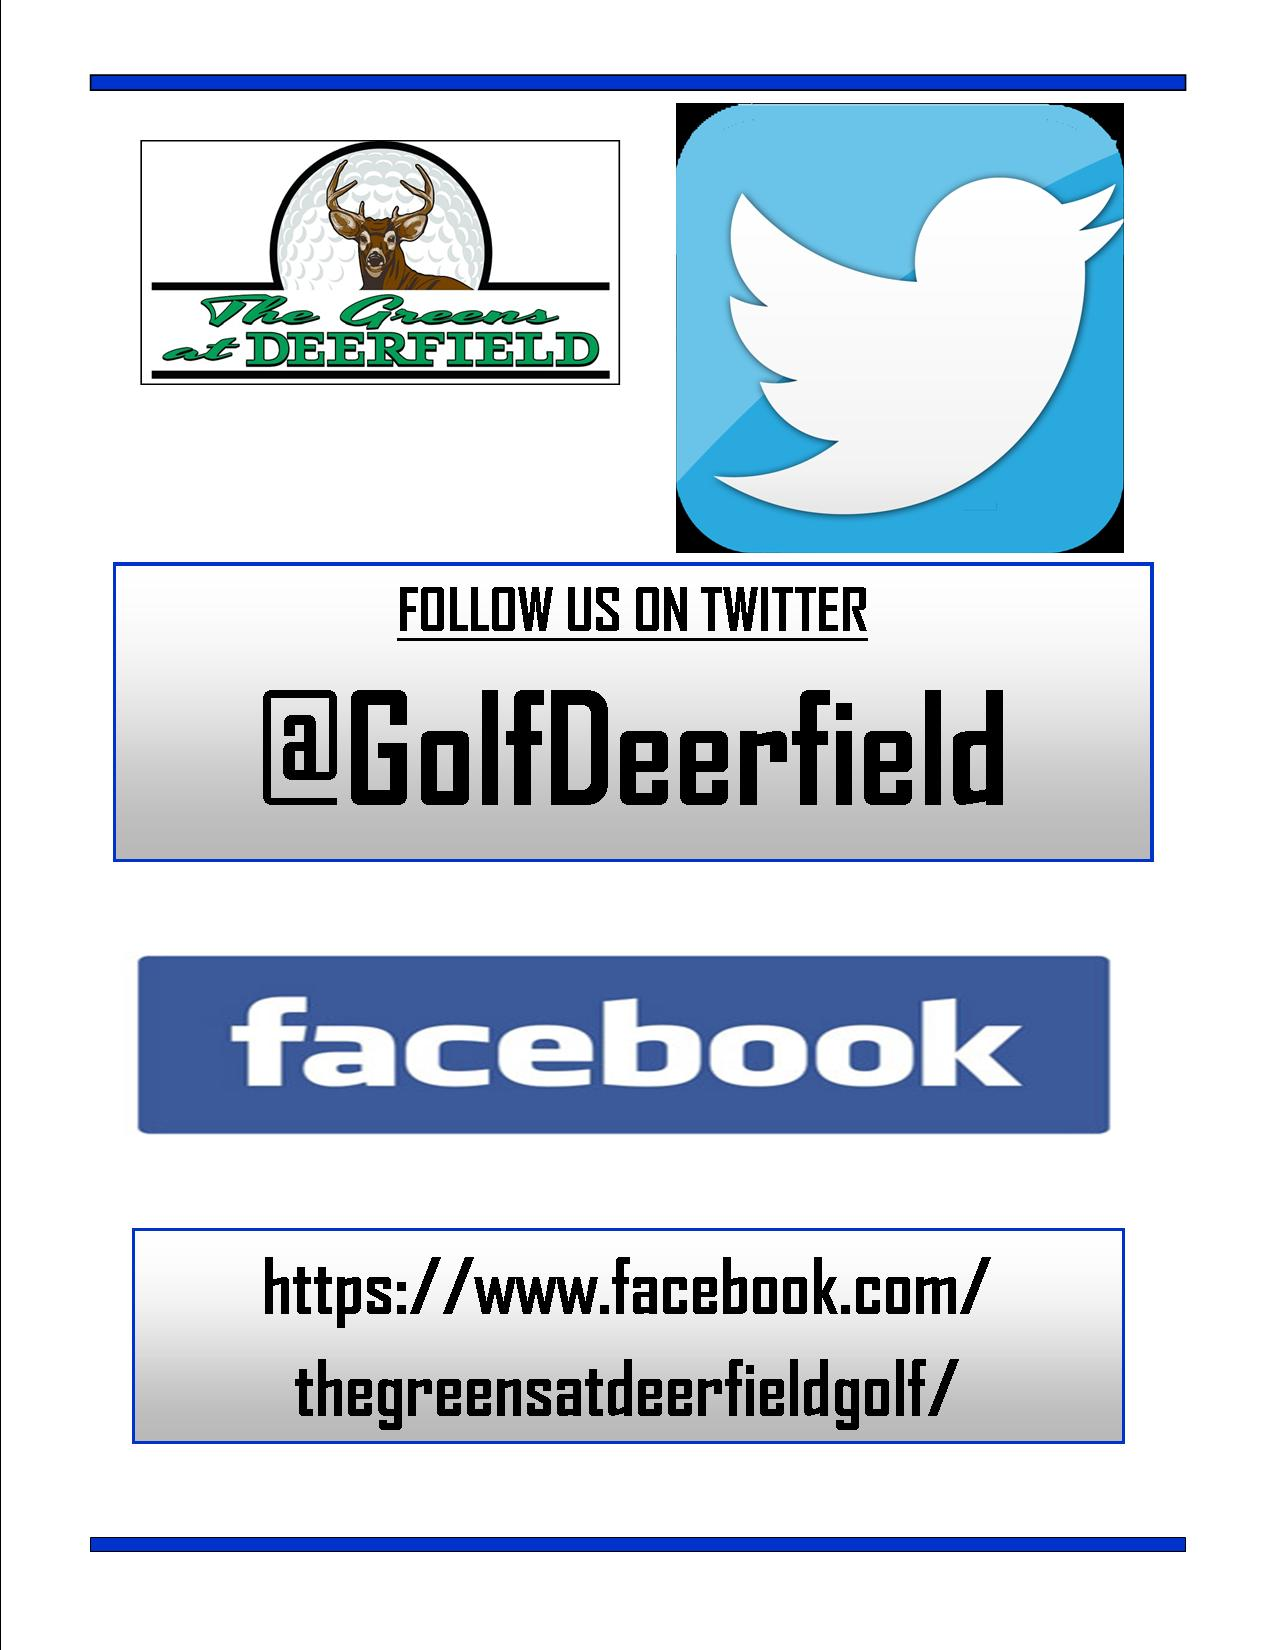 Contact Us - The Greens at Deerfield